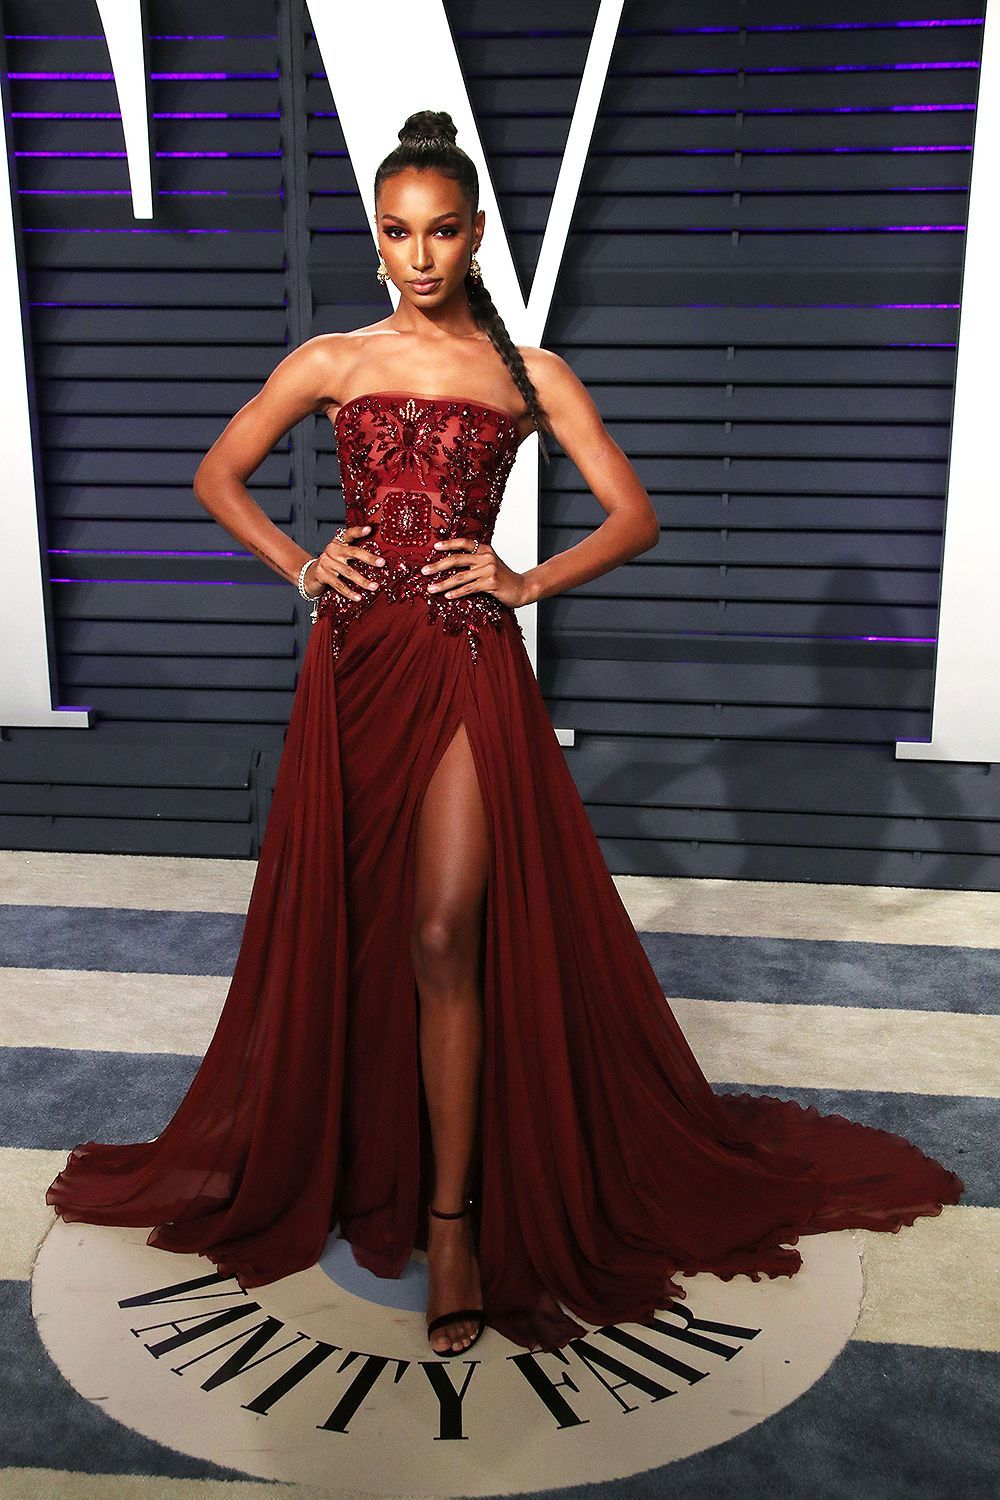 Jasmine Tookes Was Beautiful In This Regal Ruby Red Dress With A Jeweled Bodice The Combo Of The Heavy Bodice An Celebrity Dresses Red Carpet Outfits Dresses [ 1500 x 1000 Pixel ]